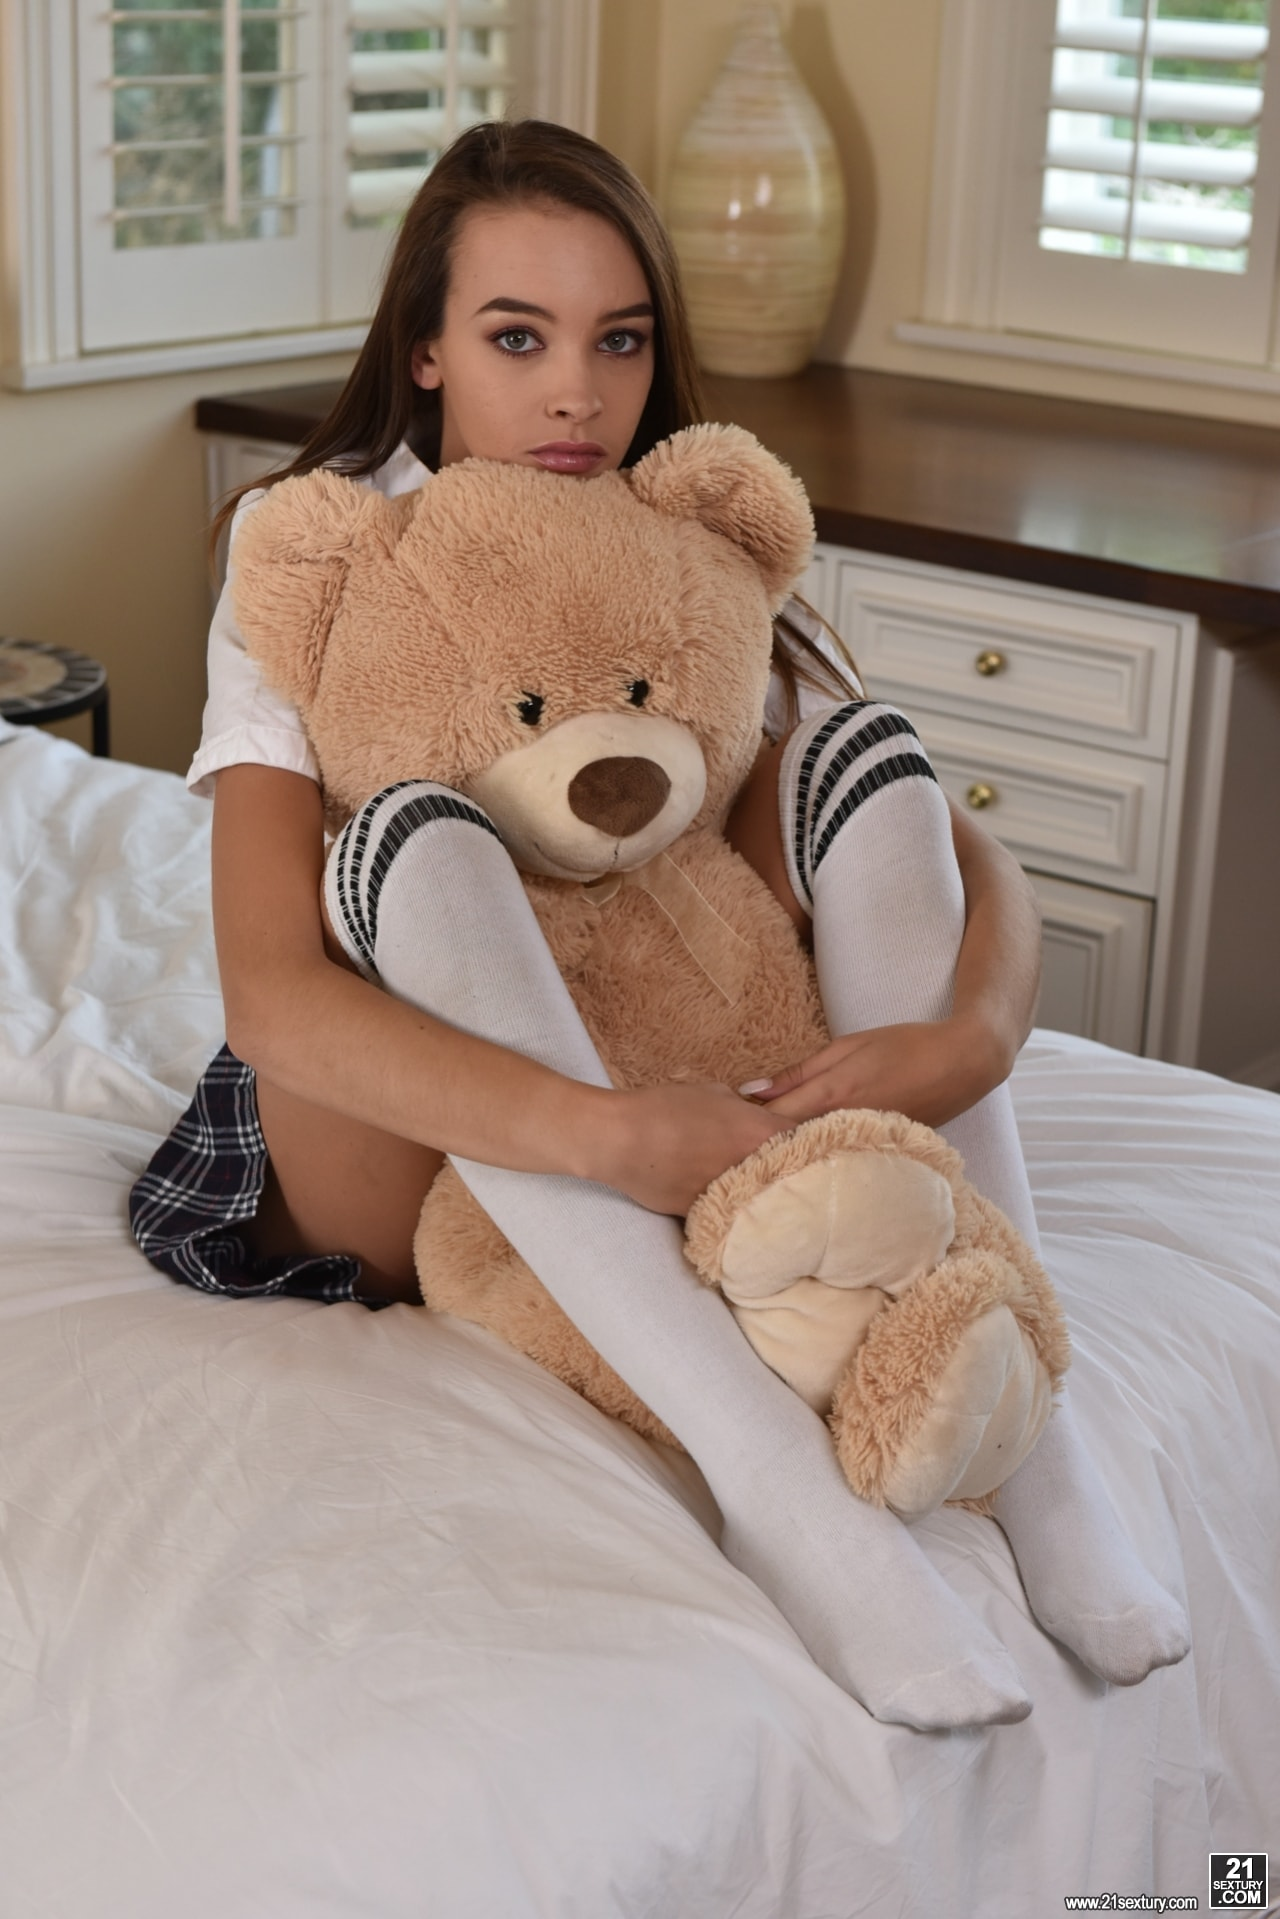 21Sextury 'Teddy Bears, Feet and Sex' starring Charity Crawford (Photo 1)